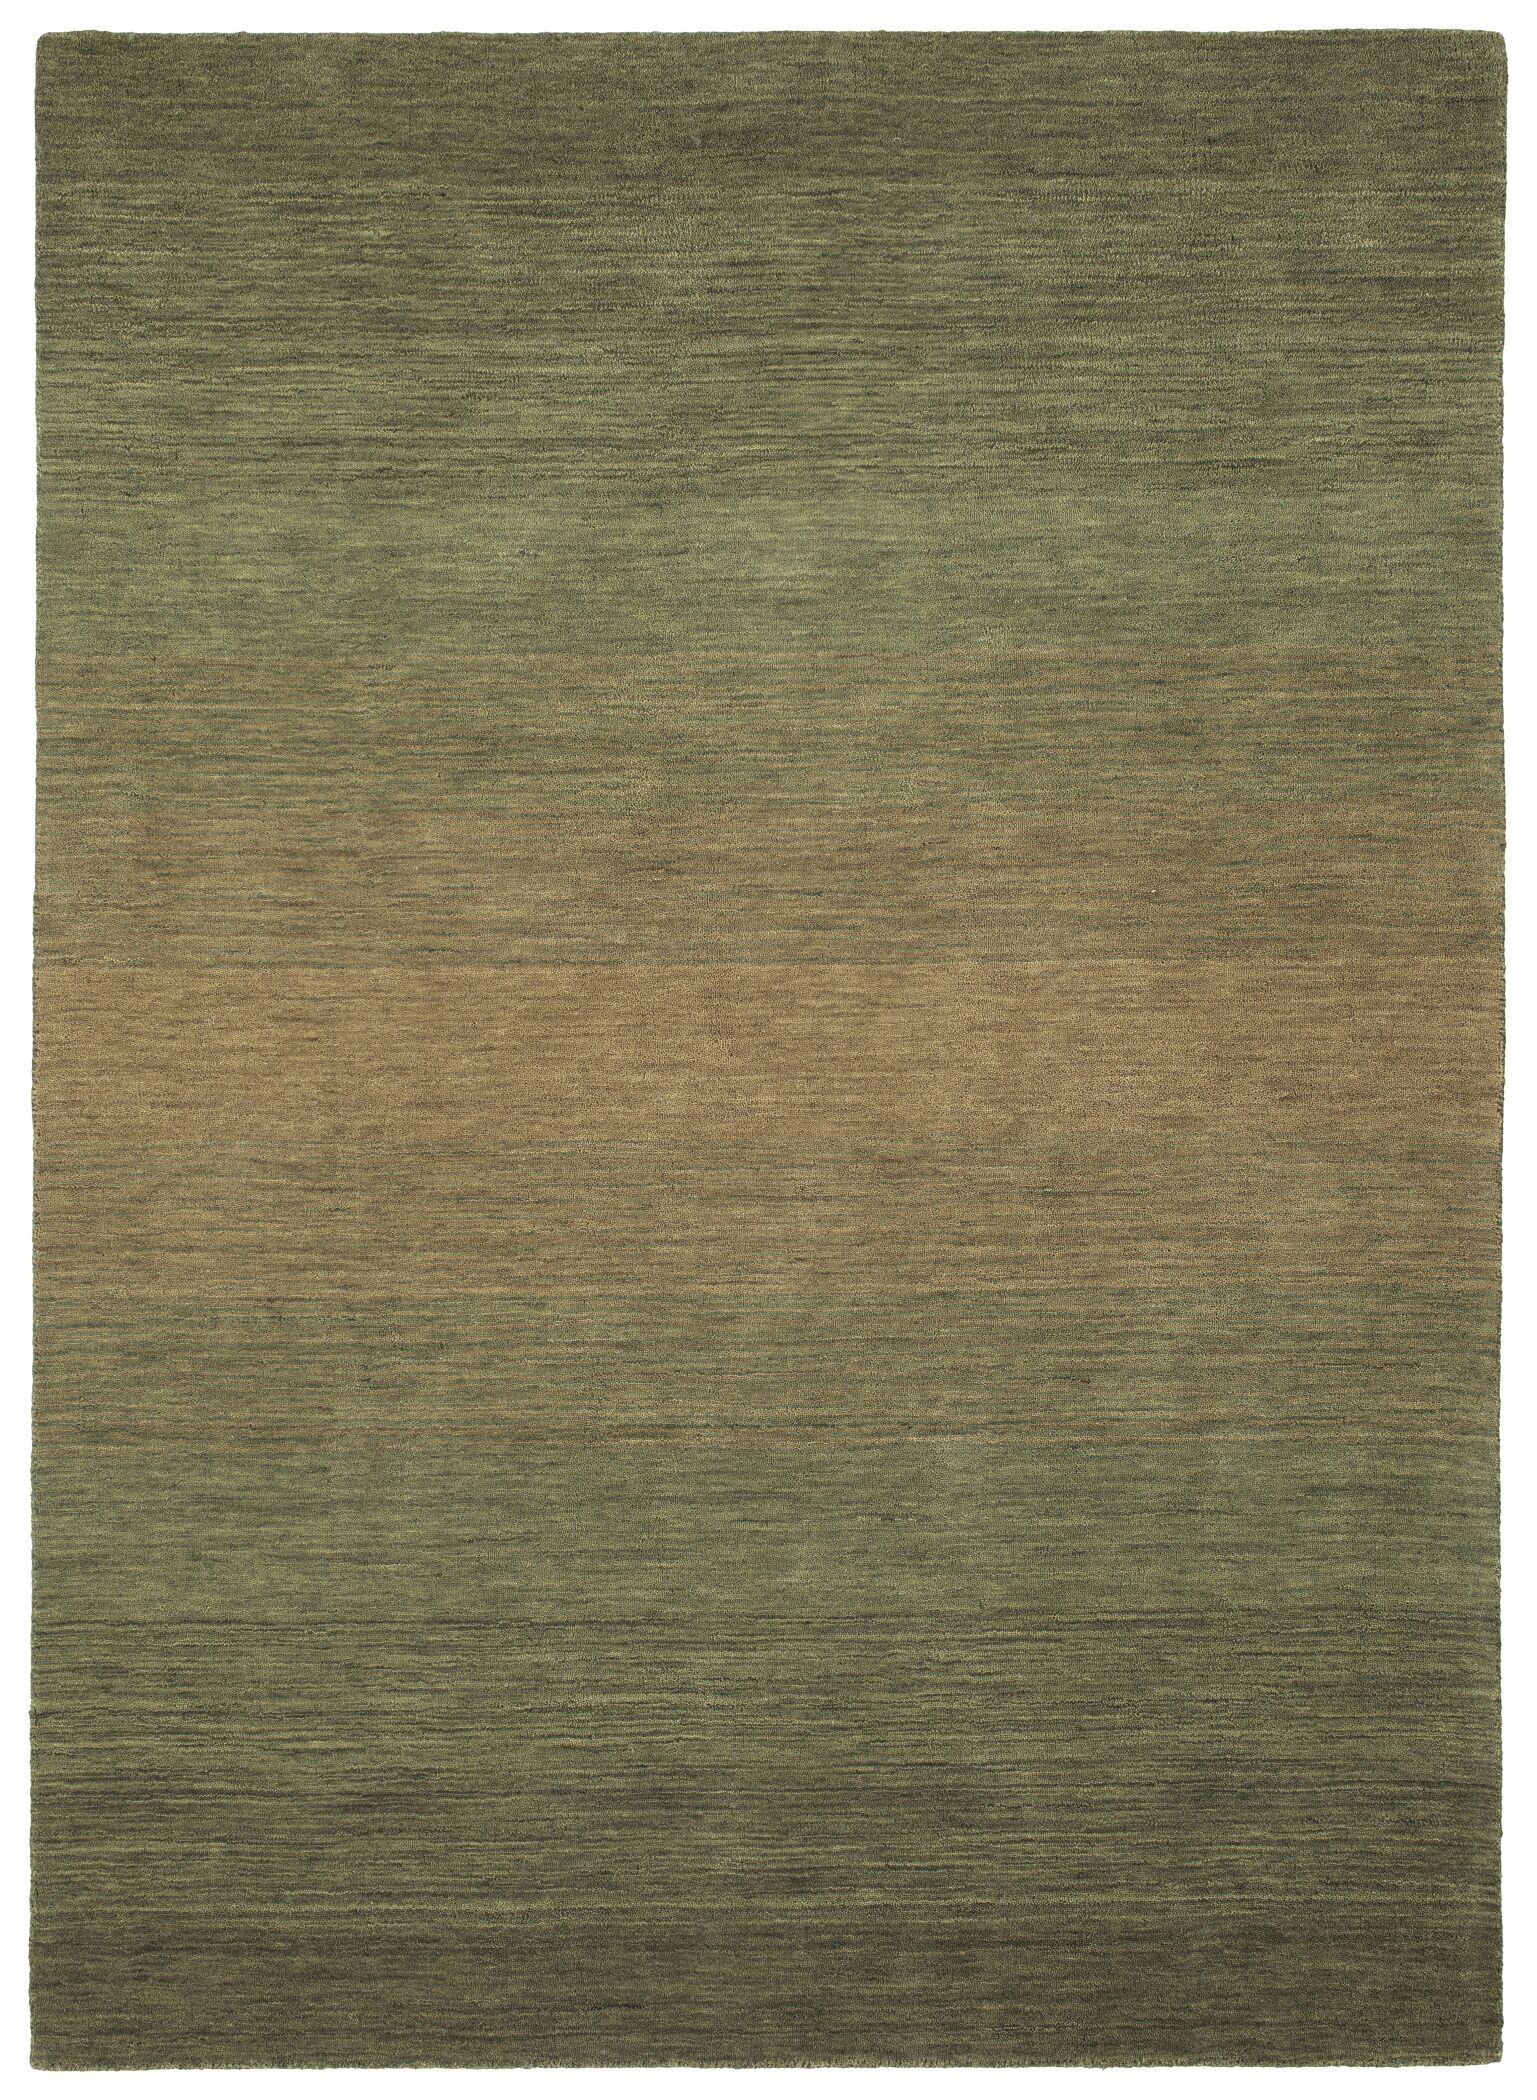 Fortune Hand Tufted Wool Green Area Rug Rug Size: 7'6